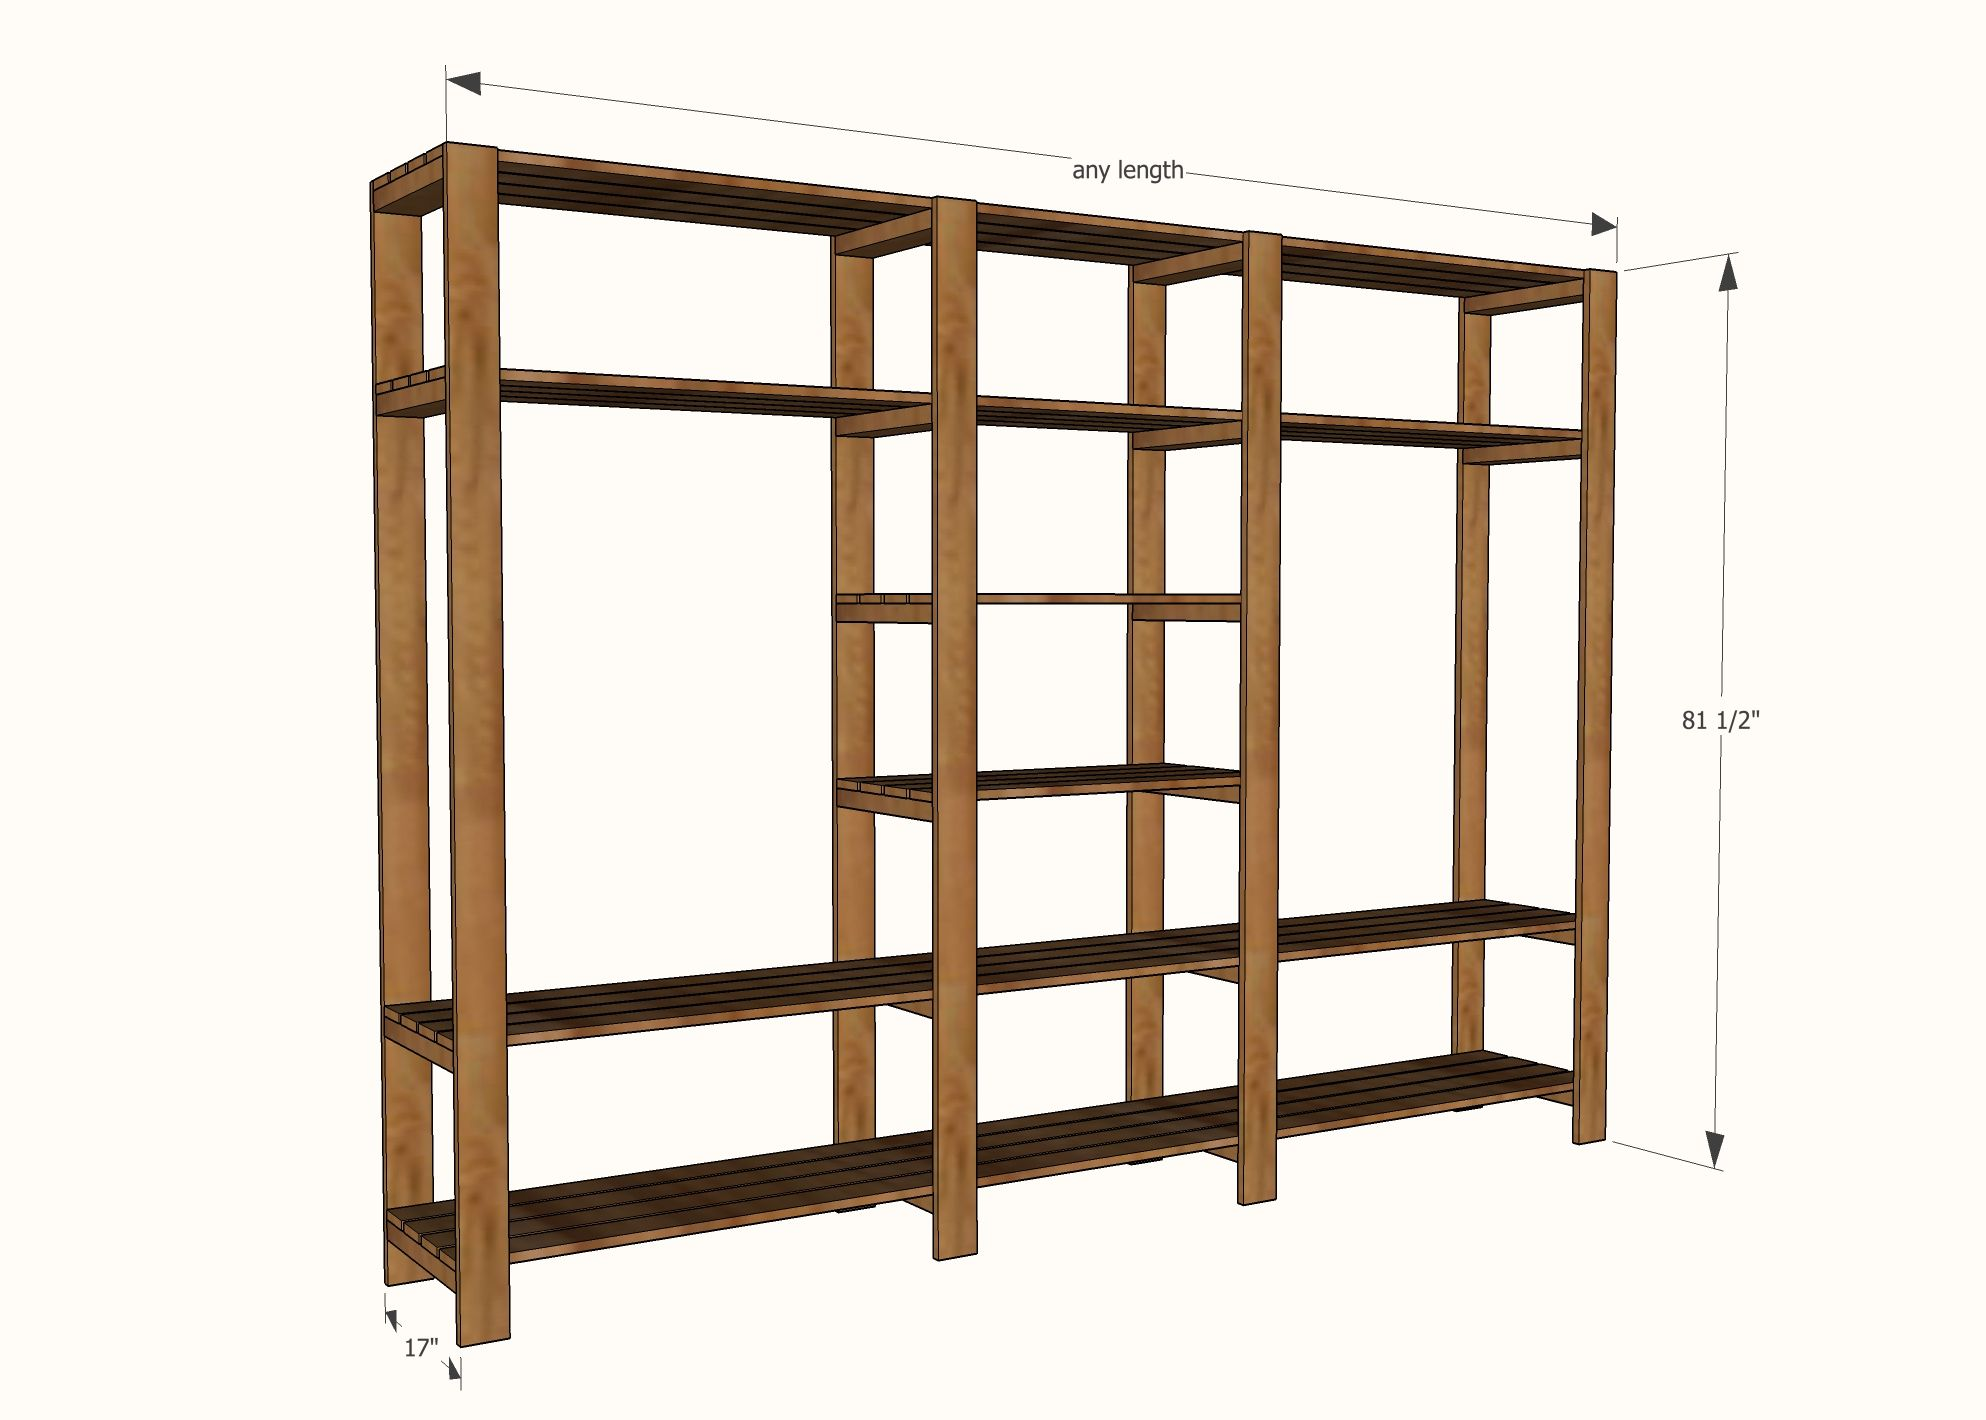 wood closet walk units drawers corner fashionable storage pine white with organizer systems of in shelving